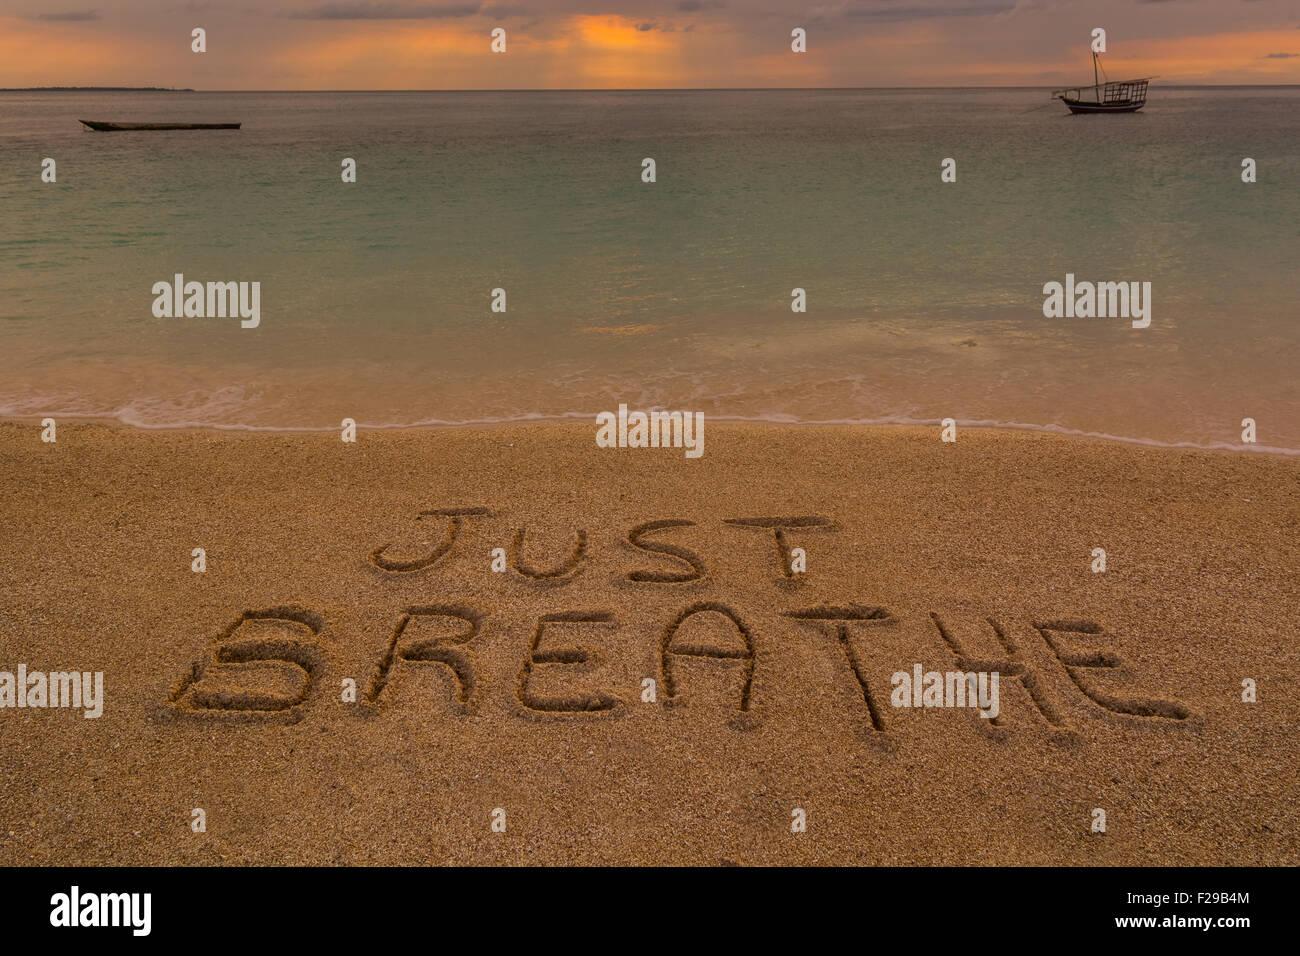 In the picture a beach at sunset with the words on the sand 'Just breathe'. - Stock Image